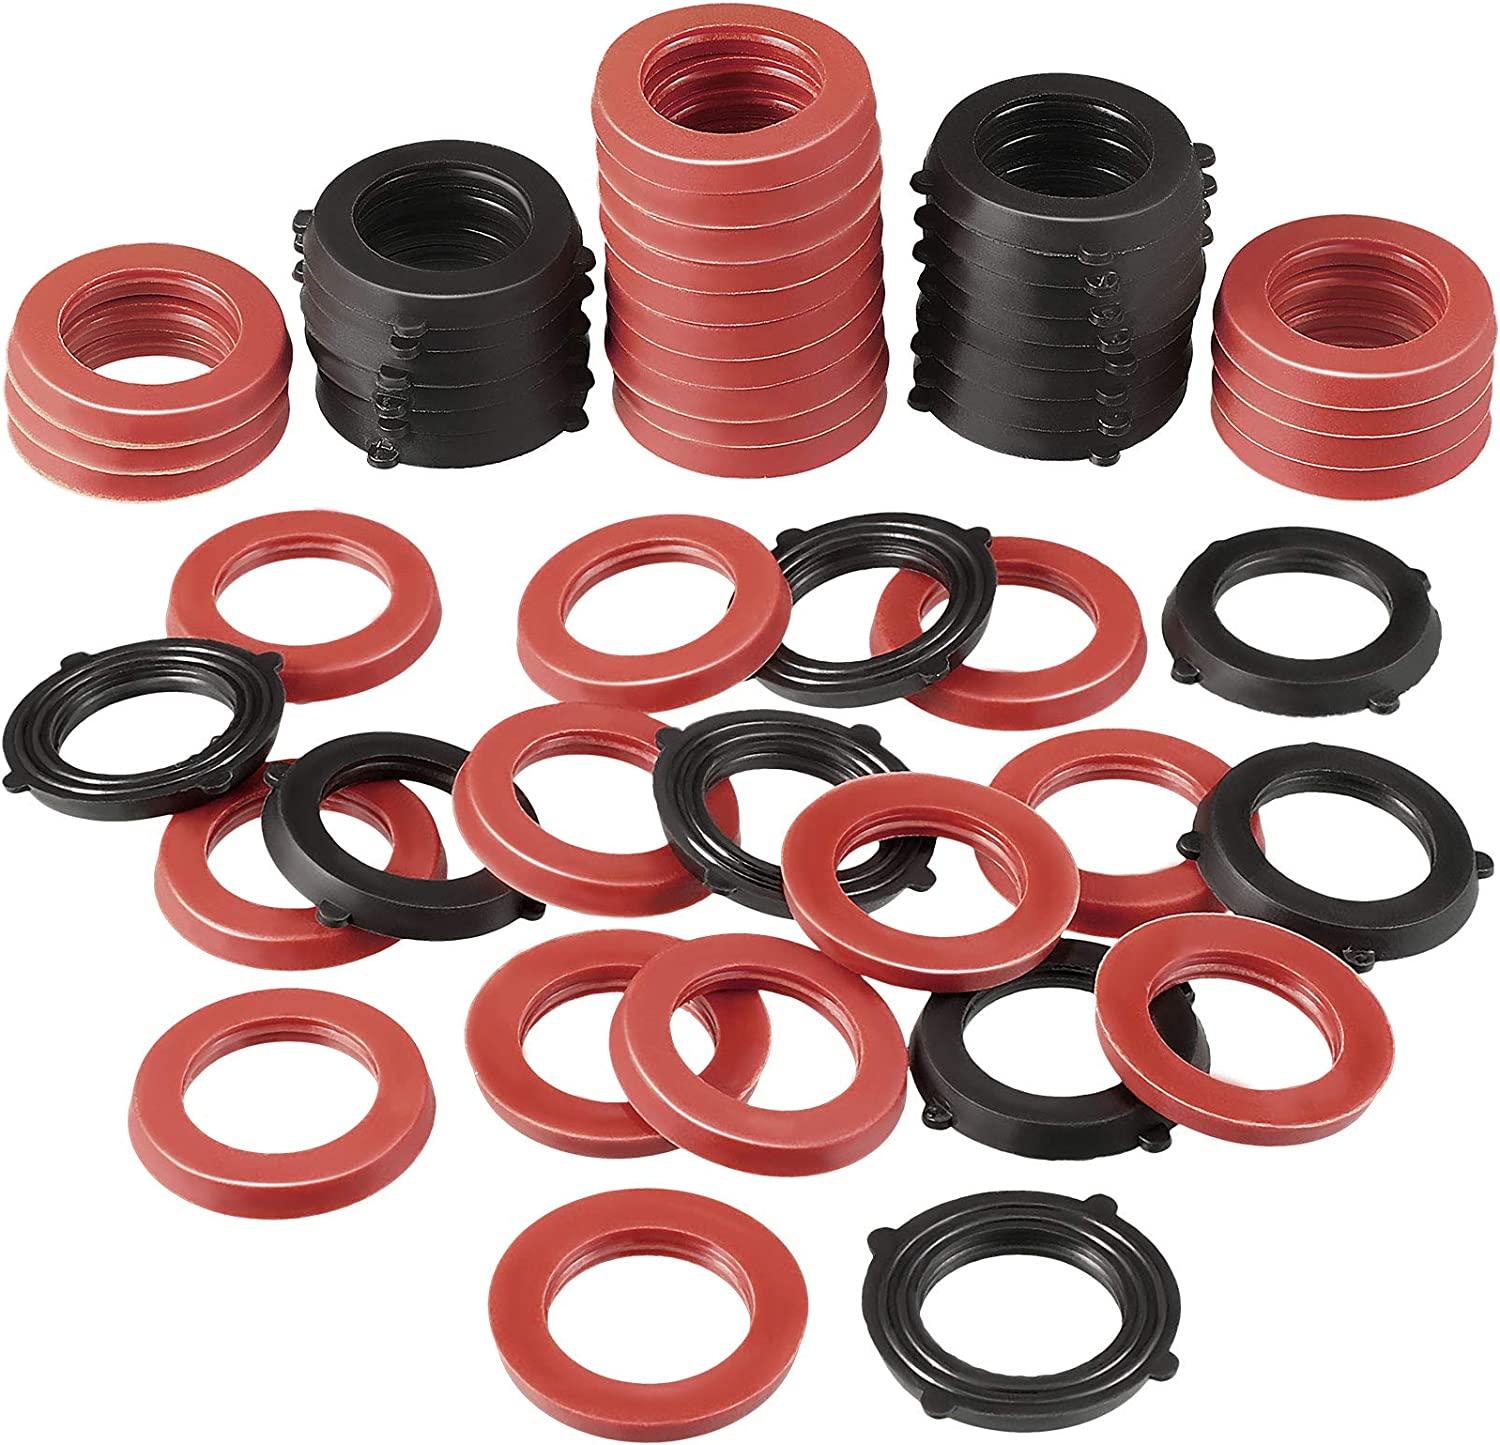 Eccliy 100 Pieces Garden Hose Washer Rubber Washer Seals Water Hose Gaskets O-Shape Rings Leak Proof Fittings for Standard 3/4 Inch Garden Shower Hose and Water Faucet, 2 Colors